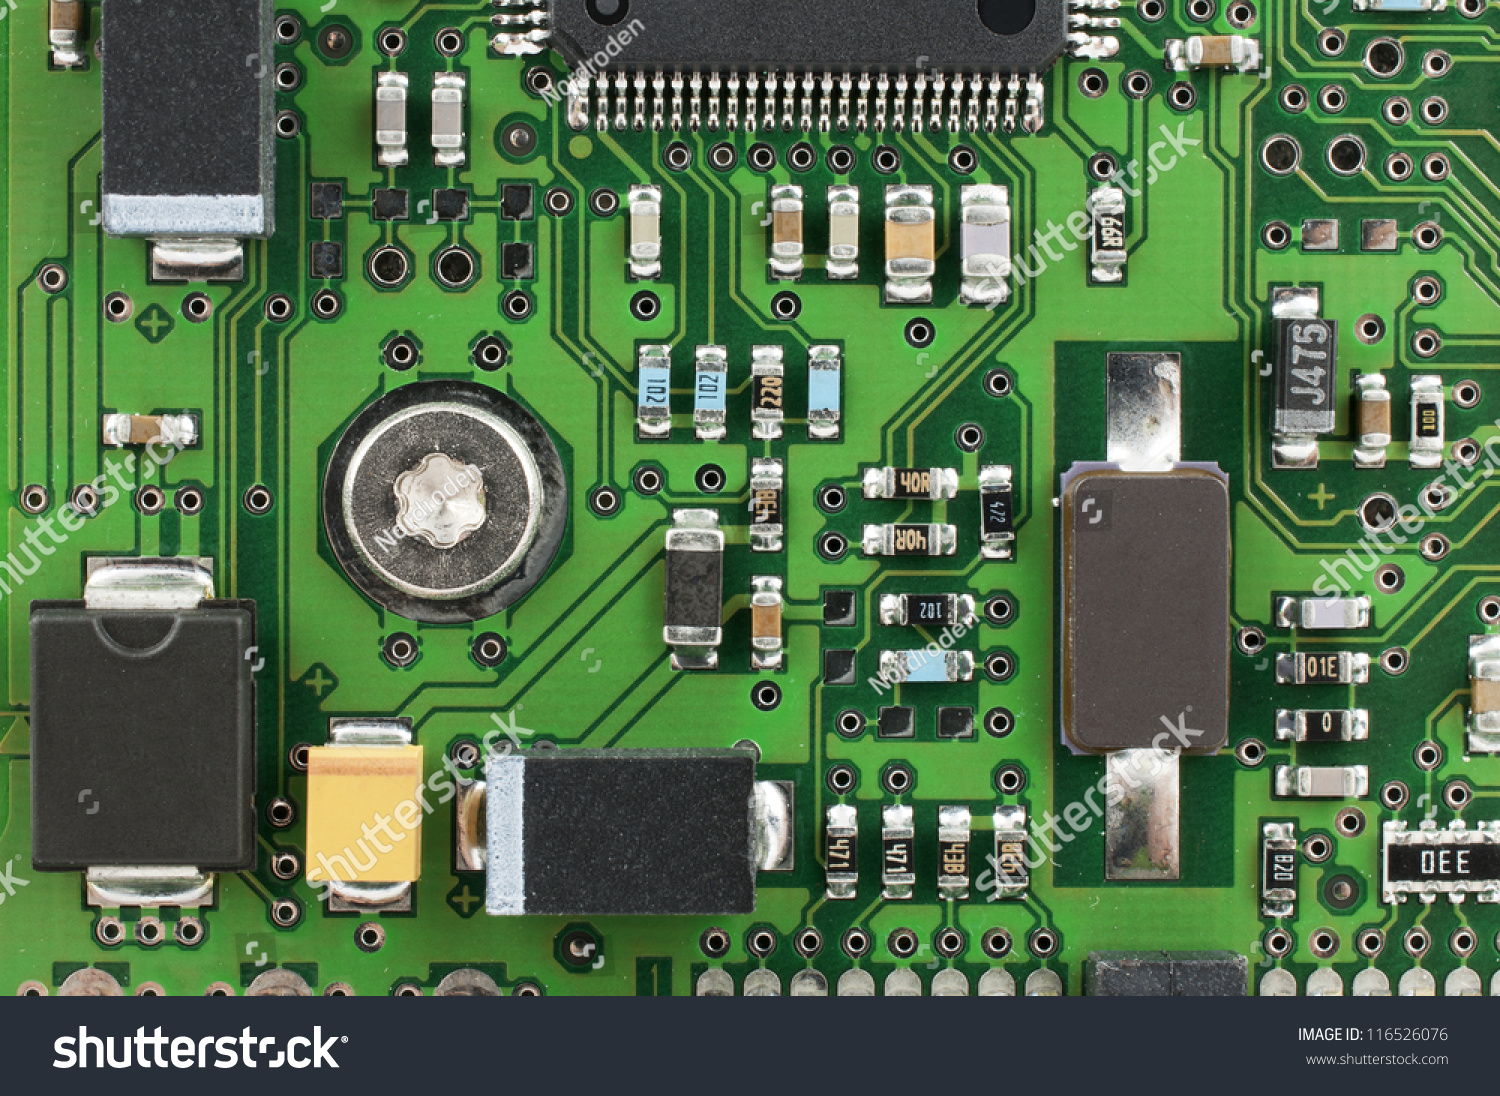 Computer PCB Electronic Components Stock Photo (Edit Now) 116526076 ...